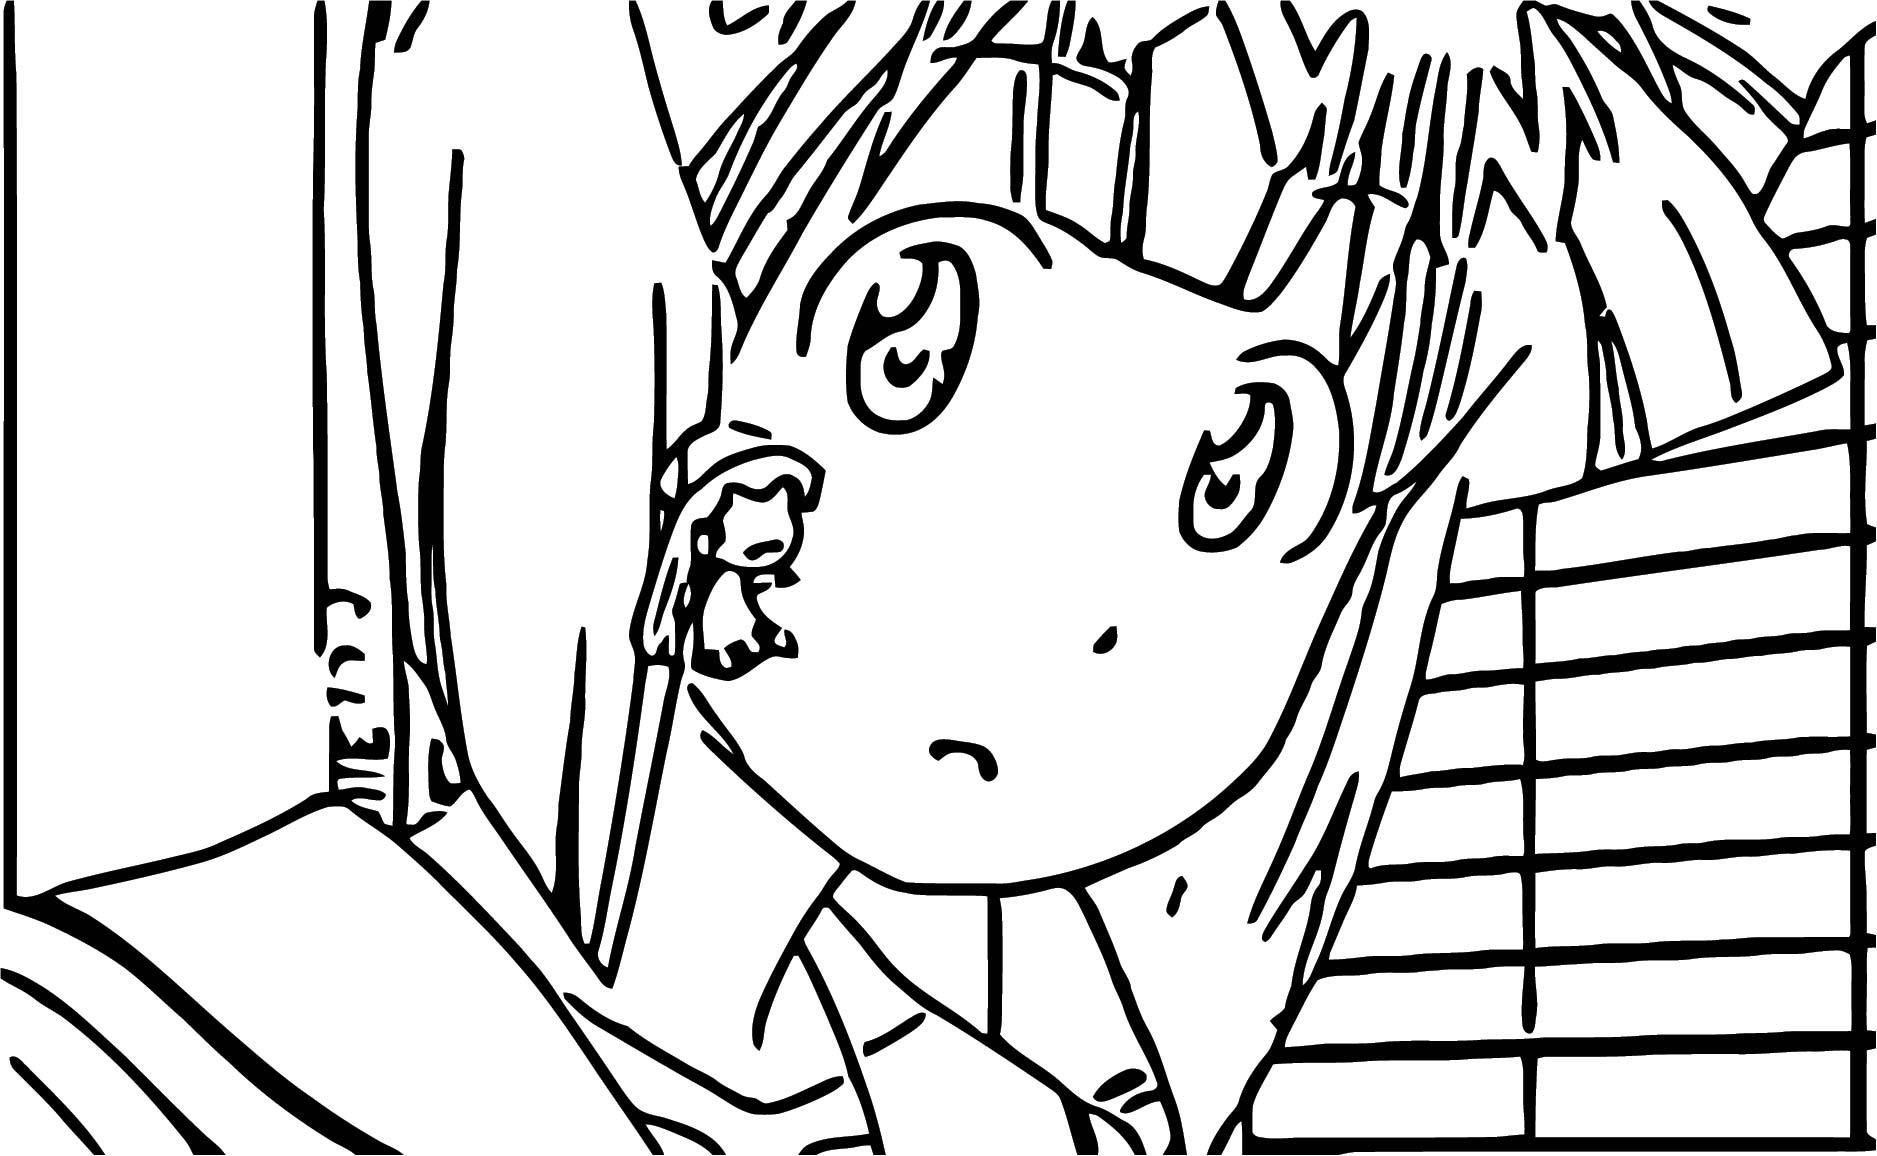 Squid Girl Season 2 Episode 6 Cartoon Coloring Page